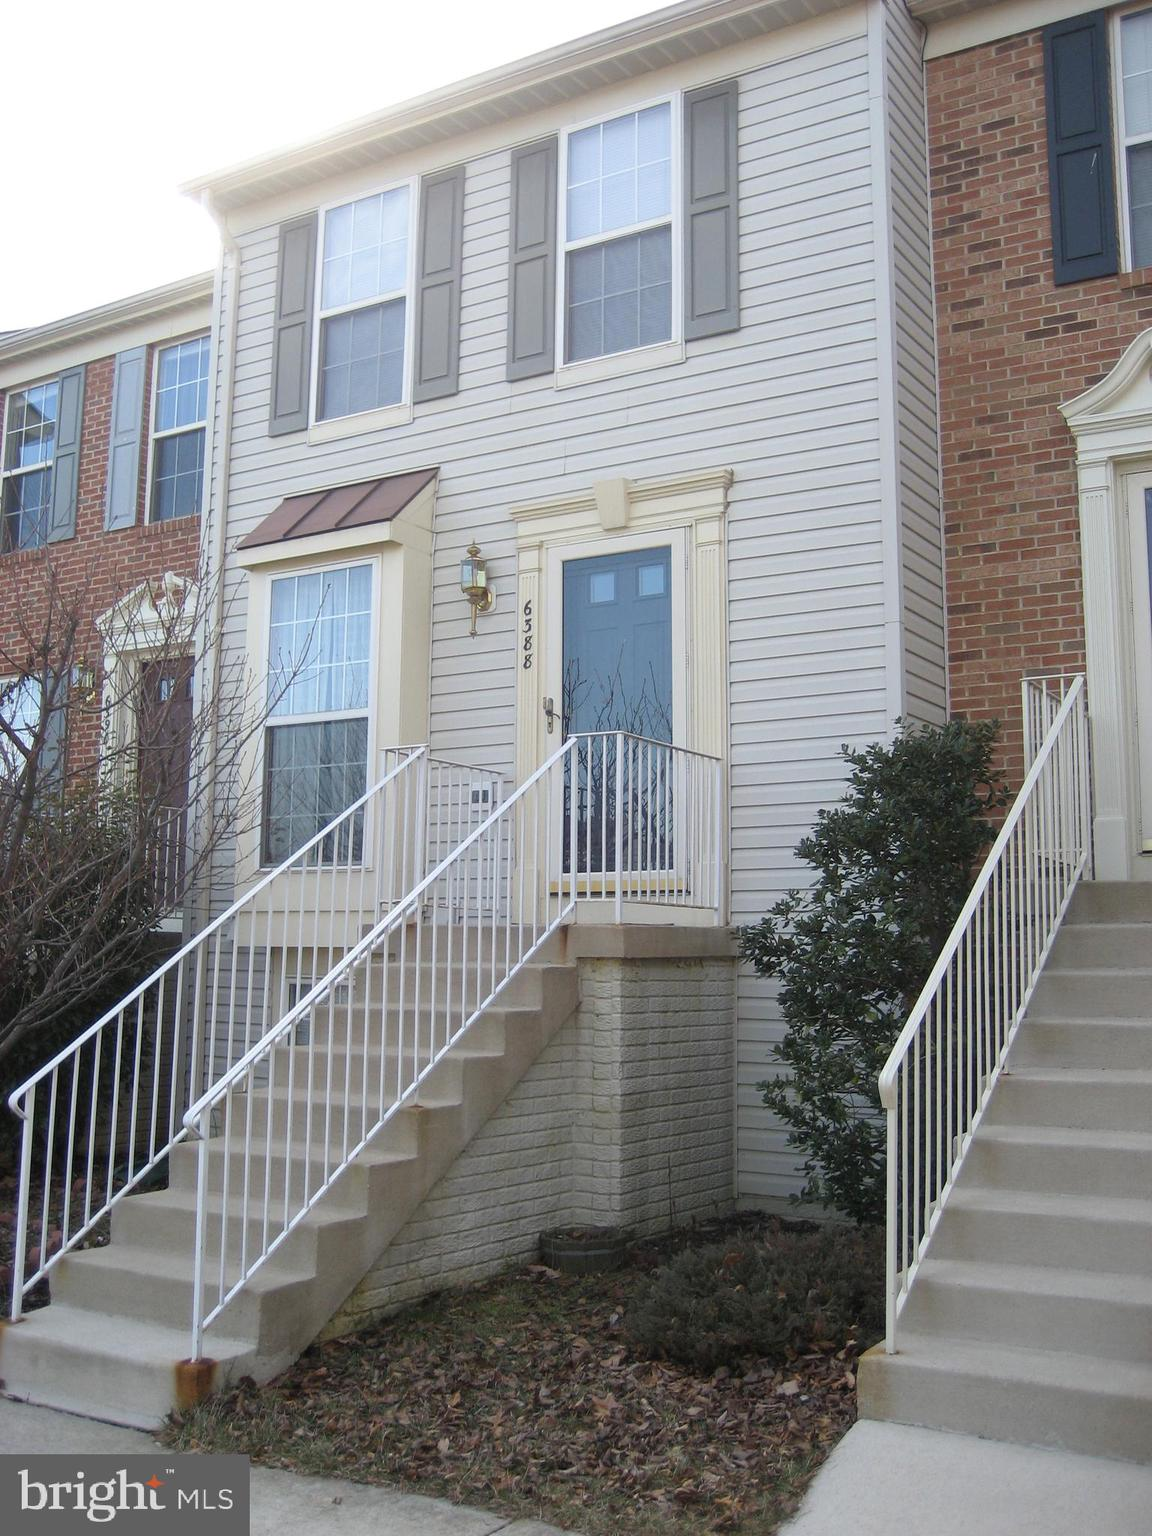 HURRY! Great location! 10 miles south of Arlington where the new Amazon HQ will be based. Take the Metro to work (walk to Metro or take a community shuttle during rush hours in AM and PM). Minutes to 495/395/95 interchange. Mall, shops, restaurants, movie theatre are less than 3 miles away.Charming townhouse with granite counters and ceramic tiles in the kitchen, direct access to large deck, 1/2 bath. UL with 2 bedrooms each with direct access to a shared double-sink bath. LL with a large open studio for office/additional bedroom/in-law suit with its own entrance and bathroom. Fenced backyard with patio under deck and garden area. Community pool. 2 reserved off-street parking spaces. New roof. Home warranty for 6 months.